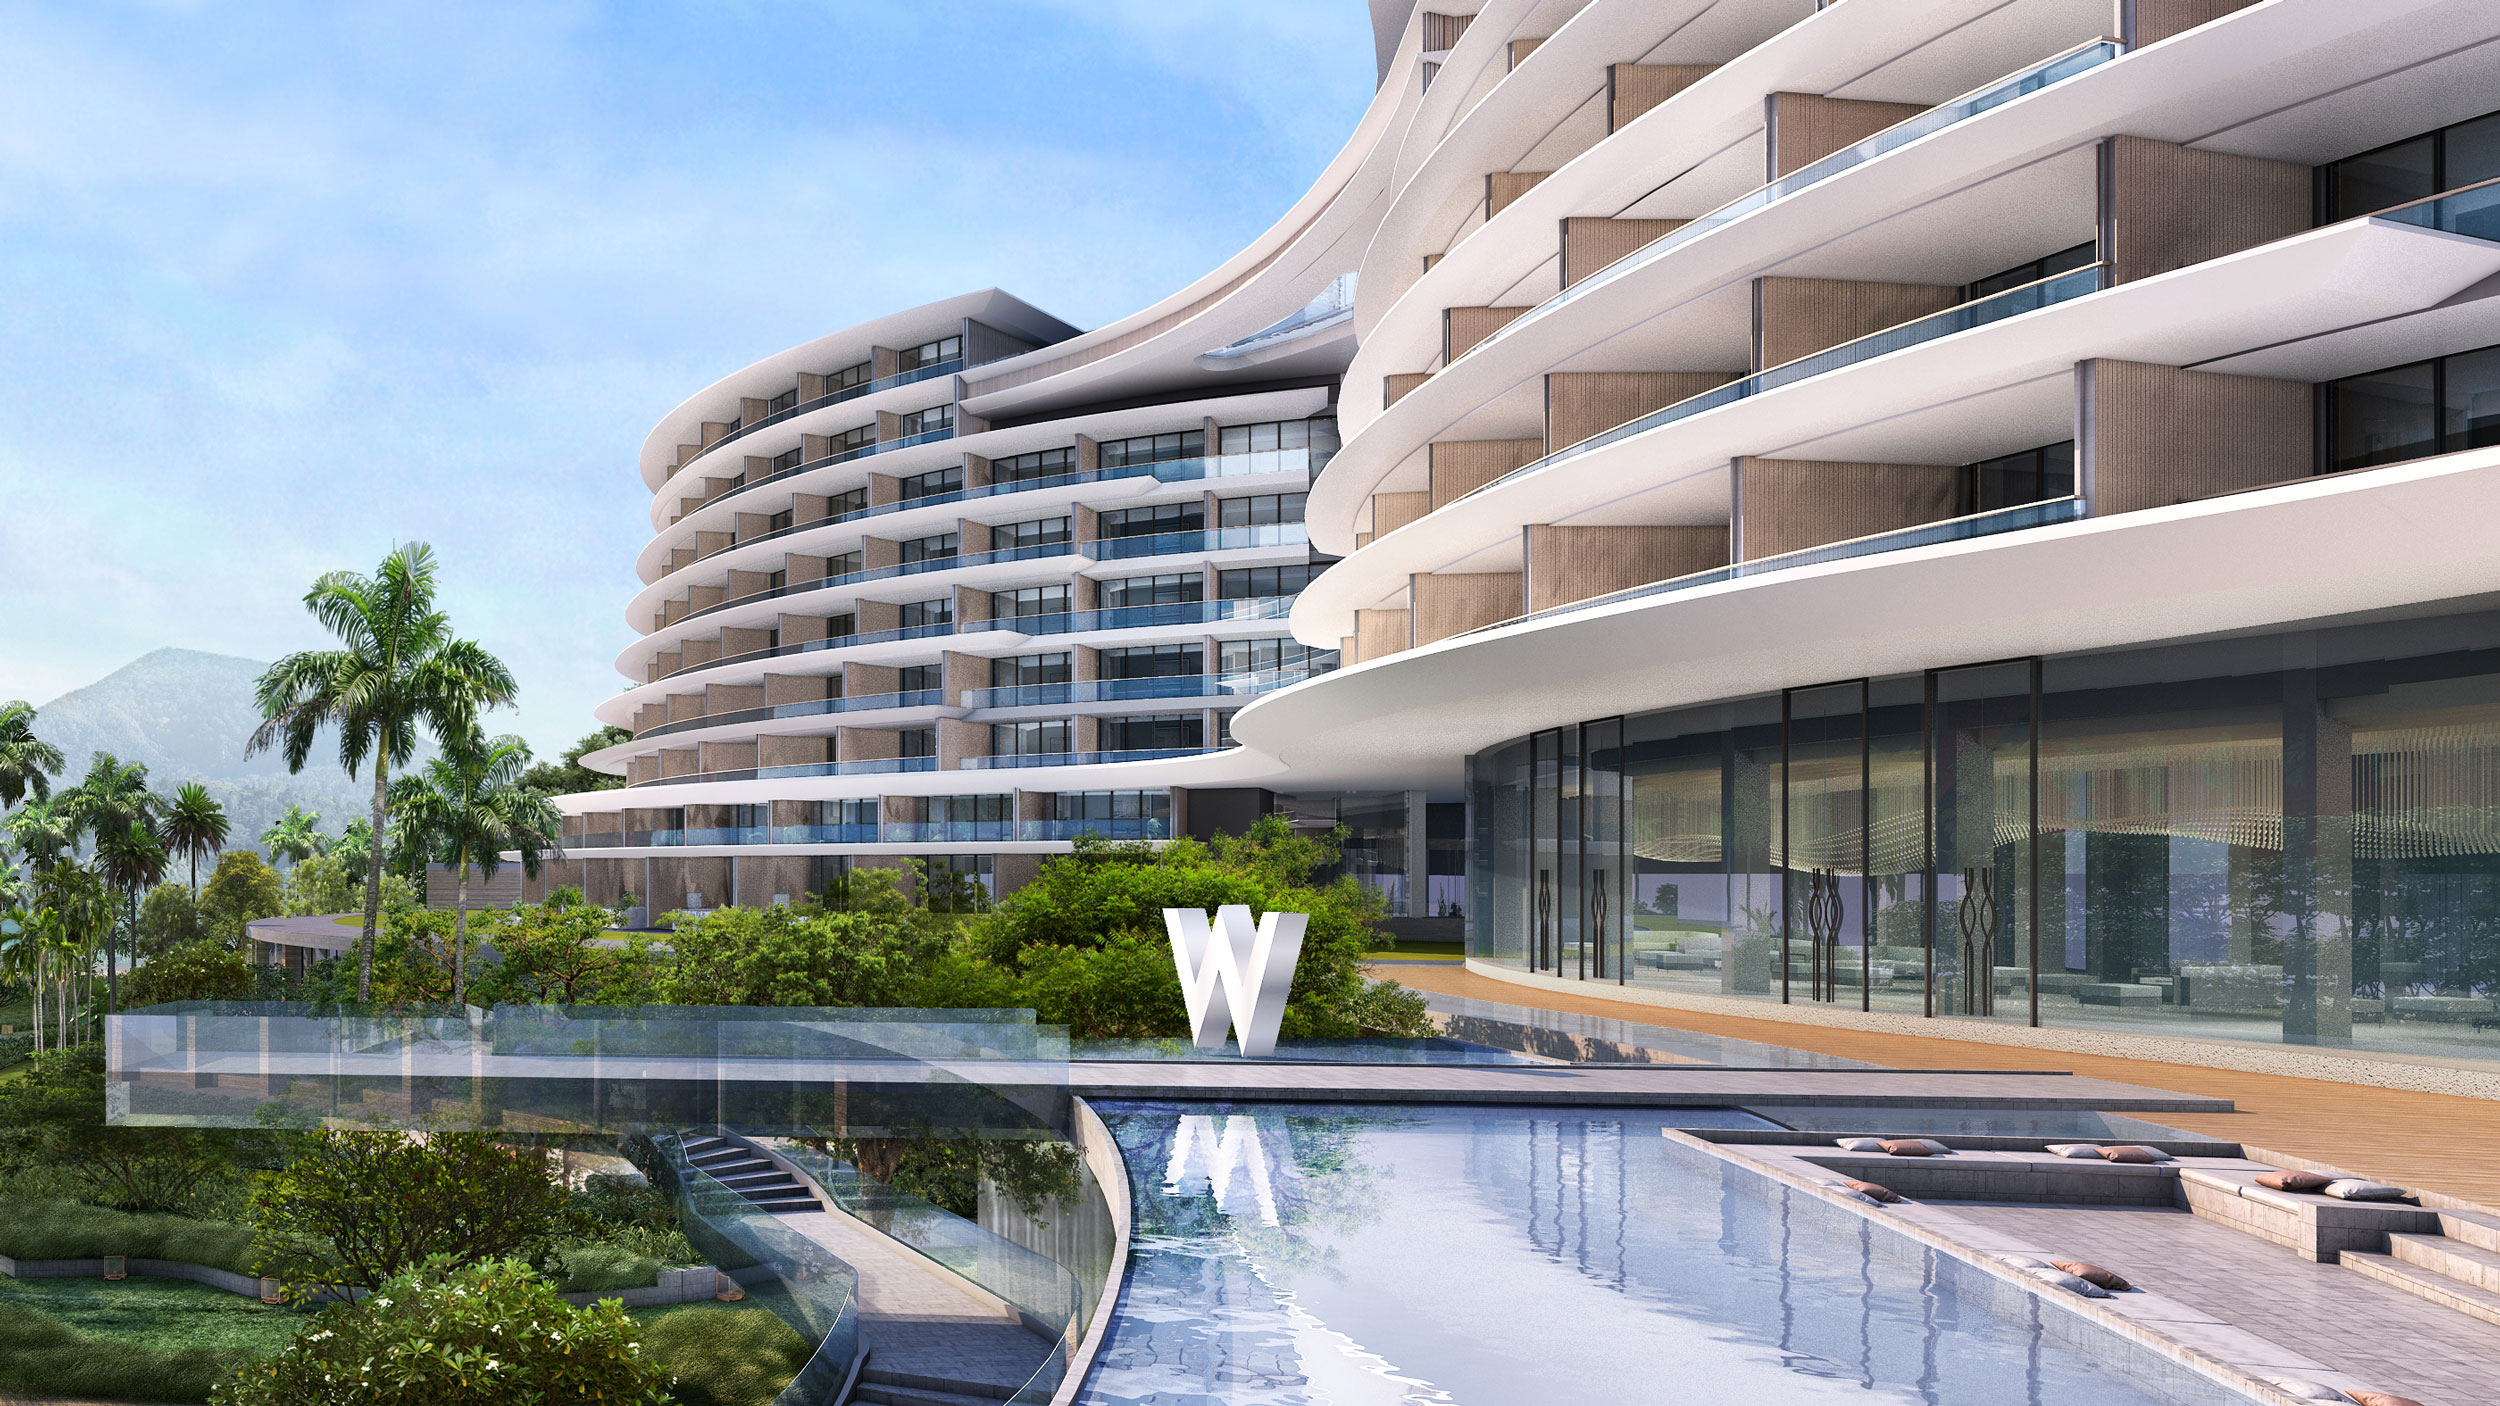 luxury resort shenzhen, building design